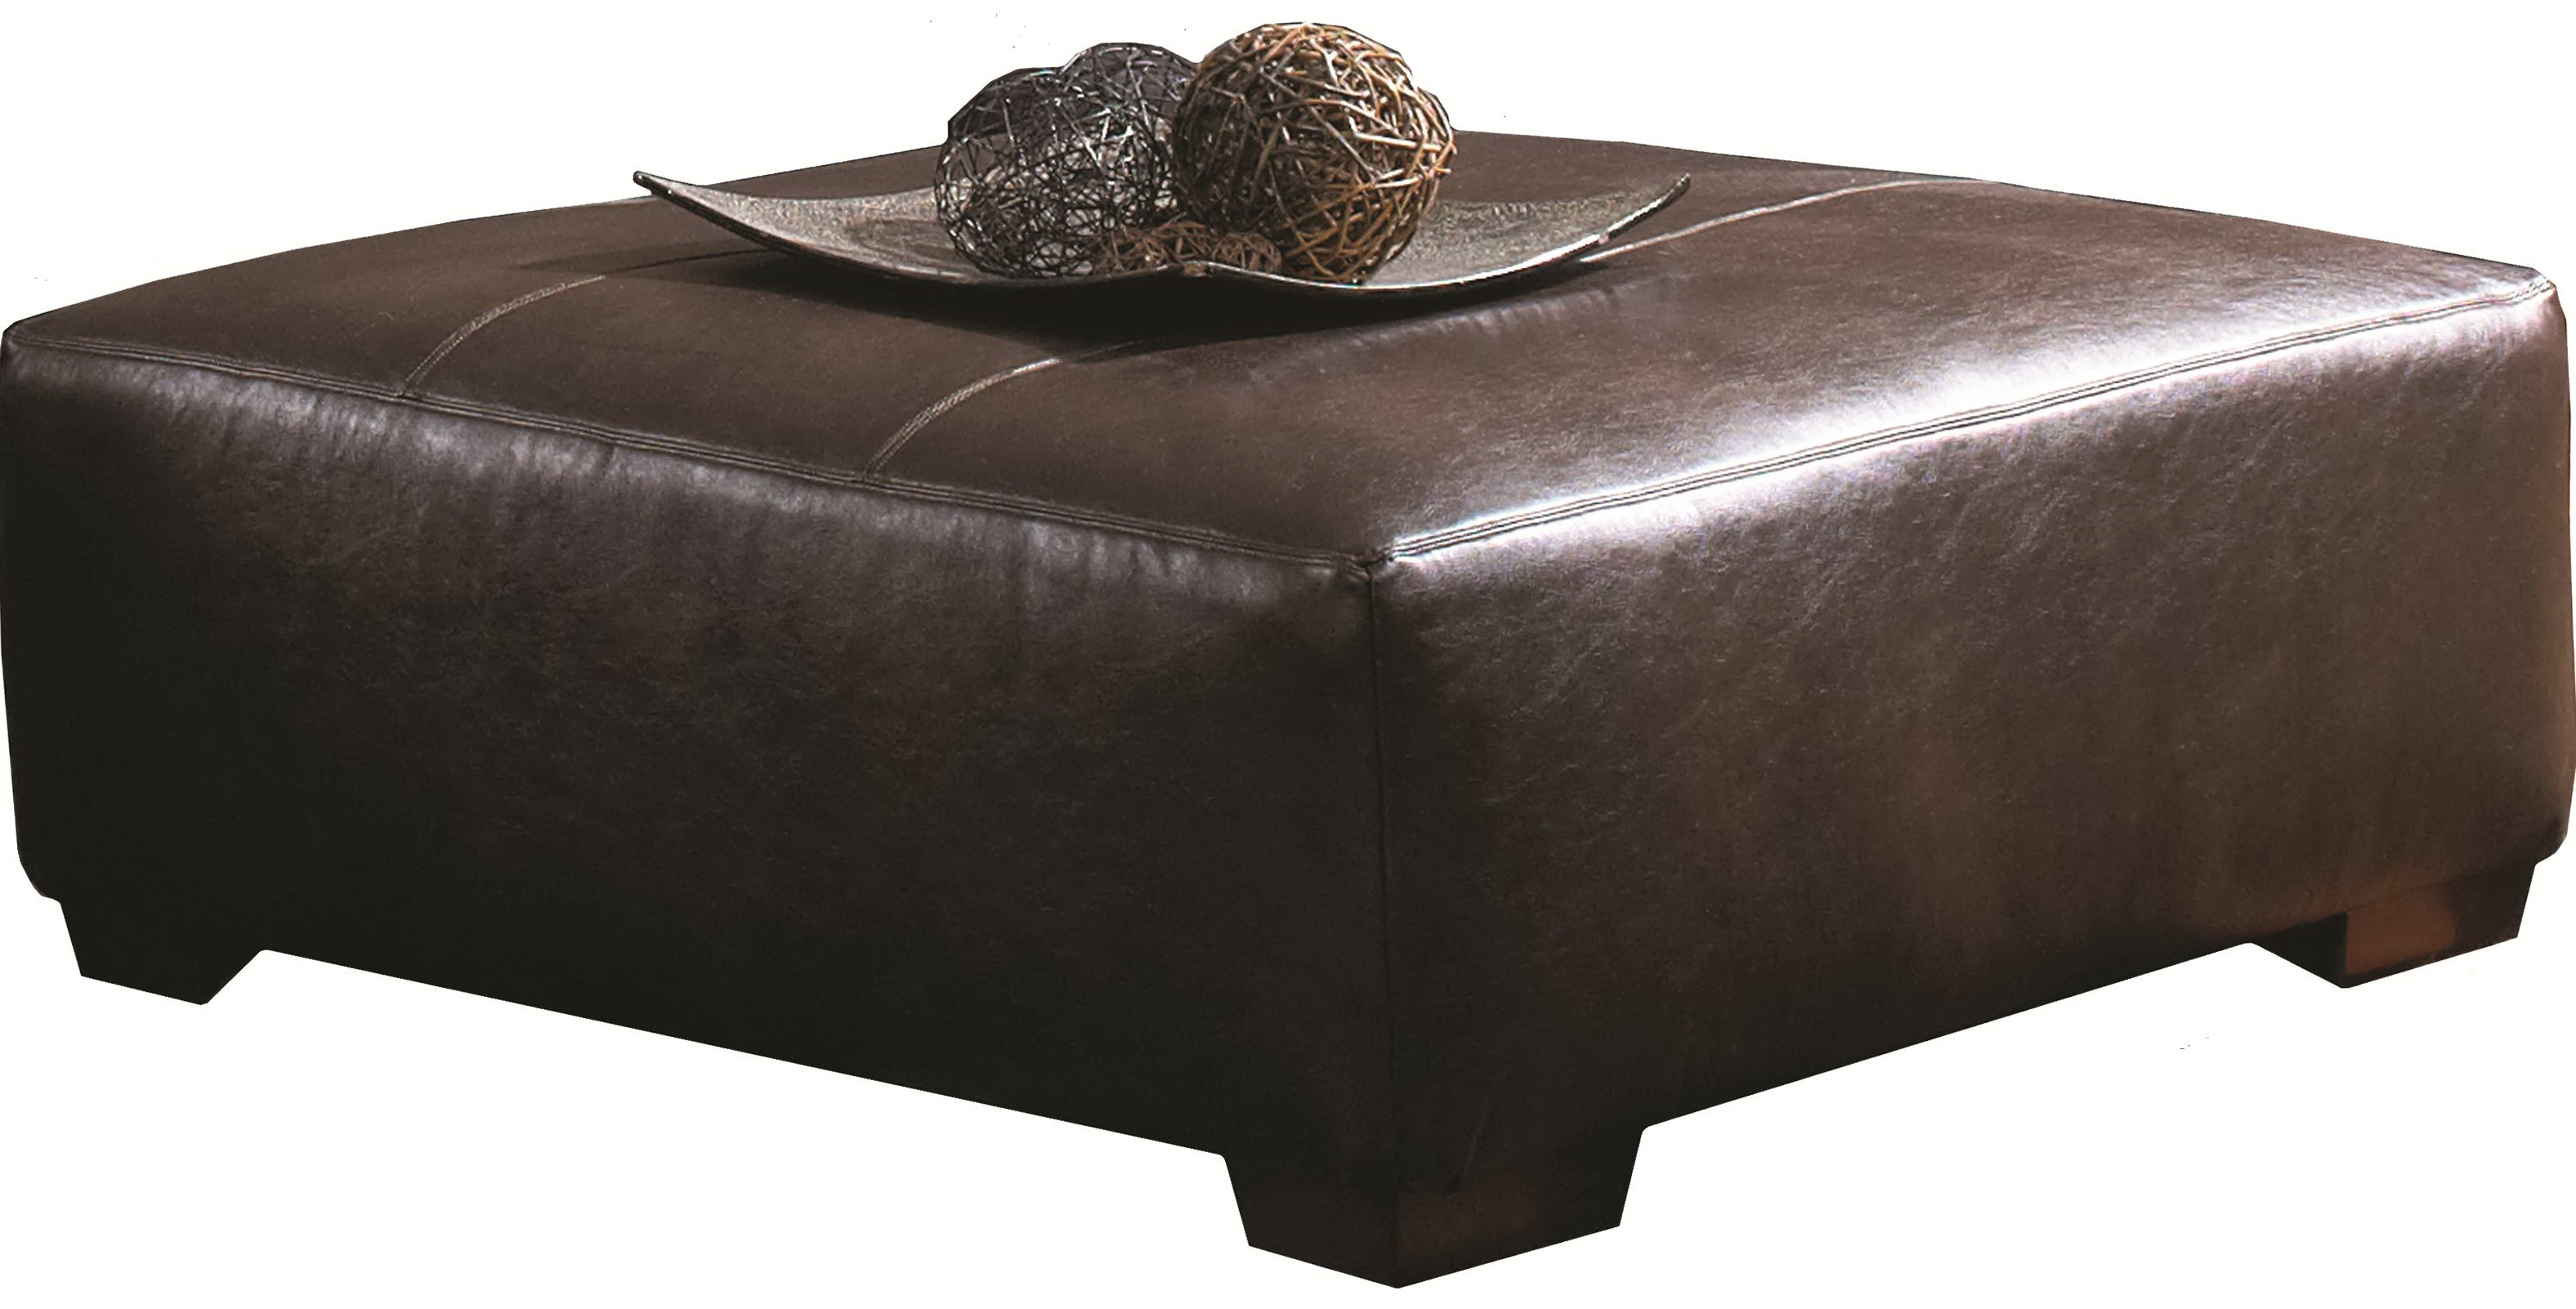 Extra Large Ottoman Coffee Table Home Design Ideas